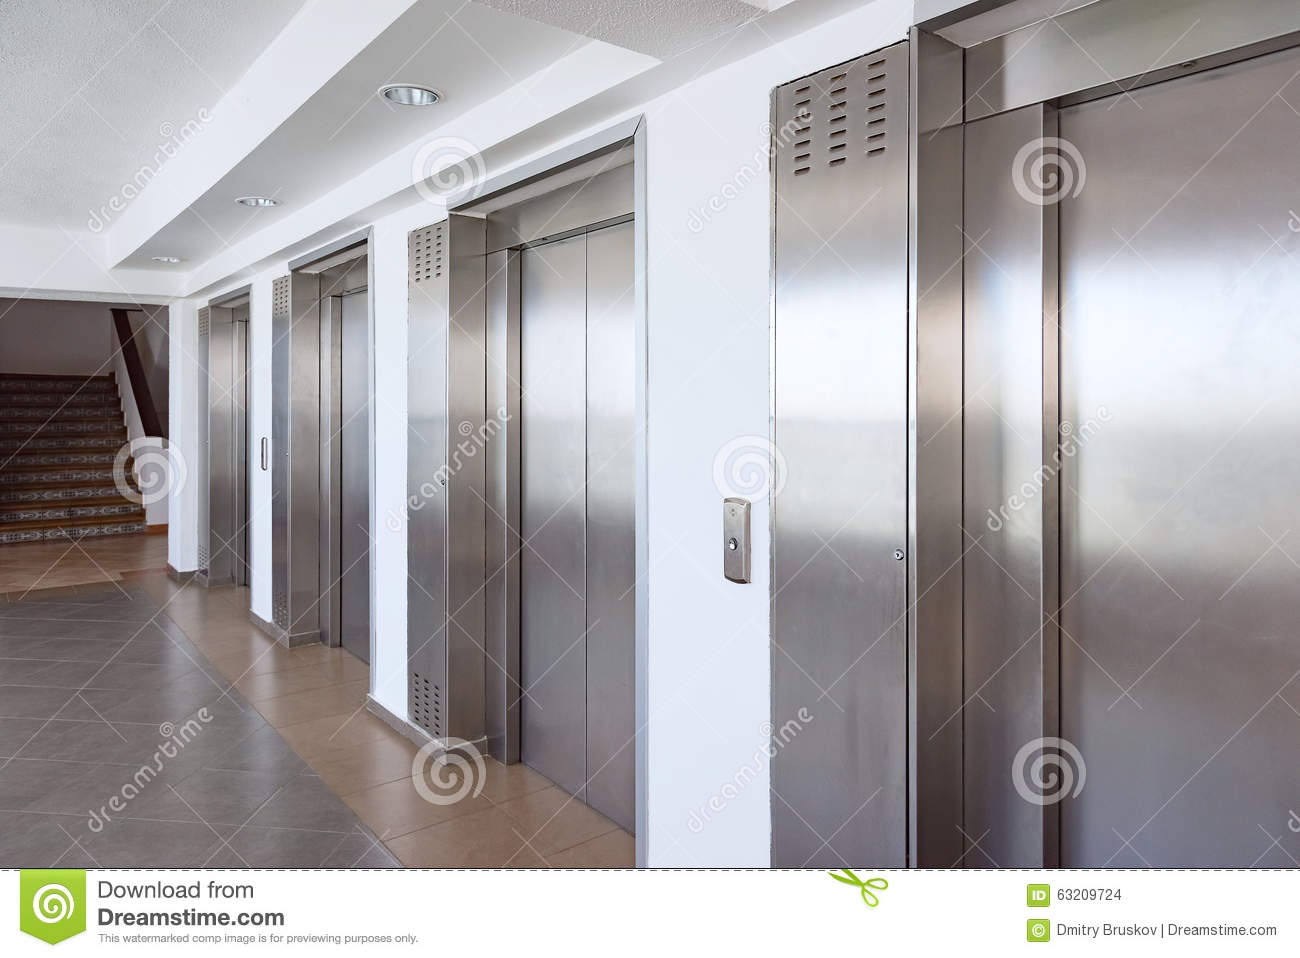 Elevator cabin stainless steel stock photo image 63209724 Elevator cabin design